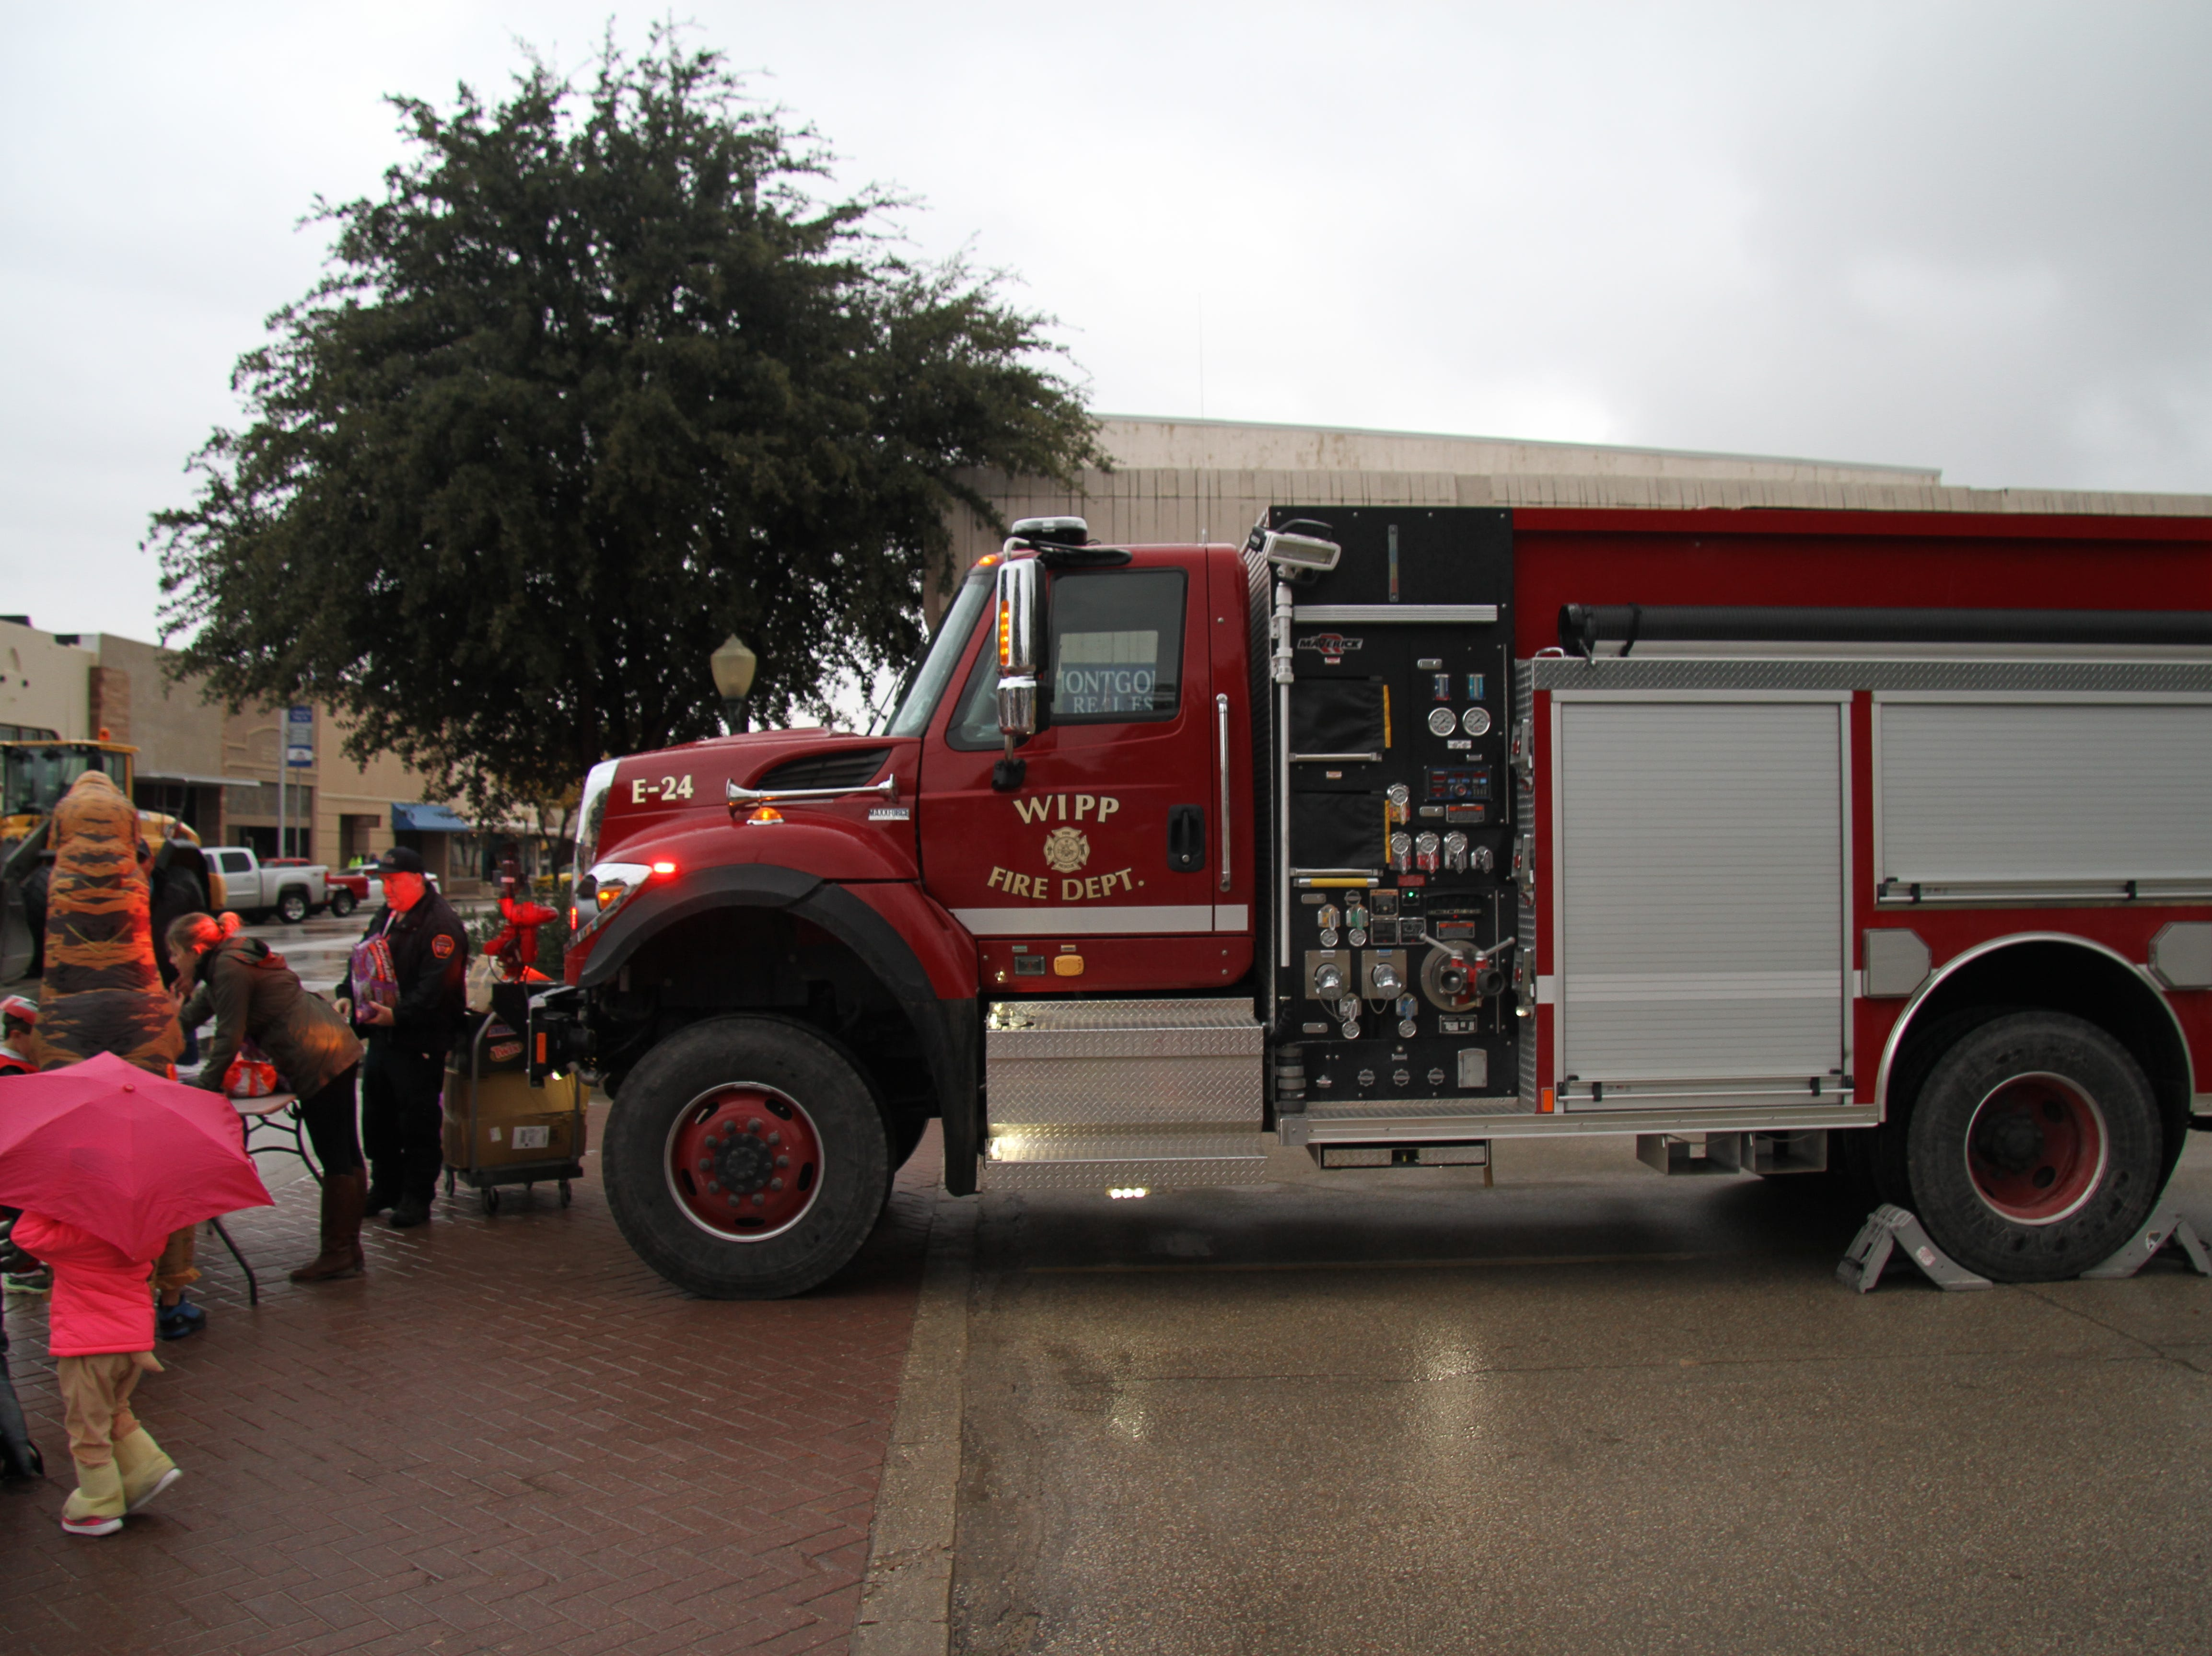 A fire truck from the WIPP Fire Department was on display Halloween afternoon for the MainStreet Fall Festival.